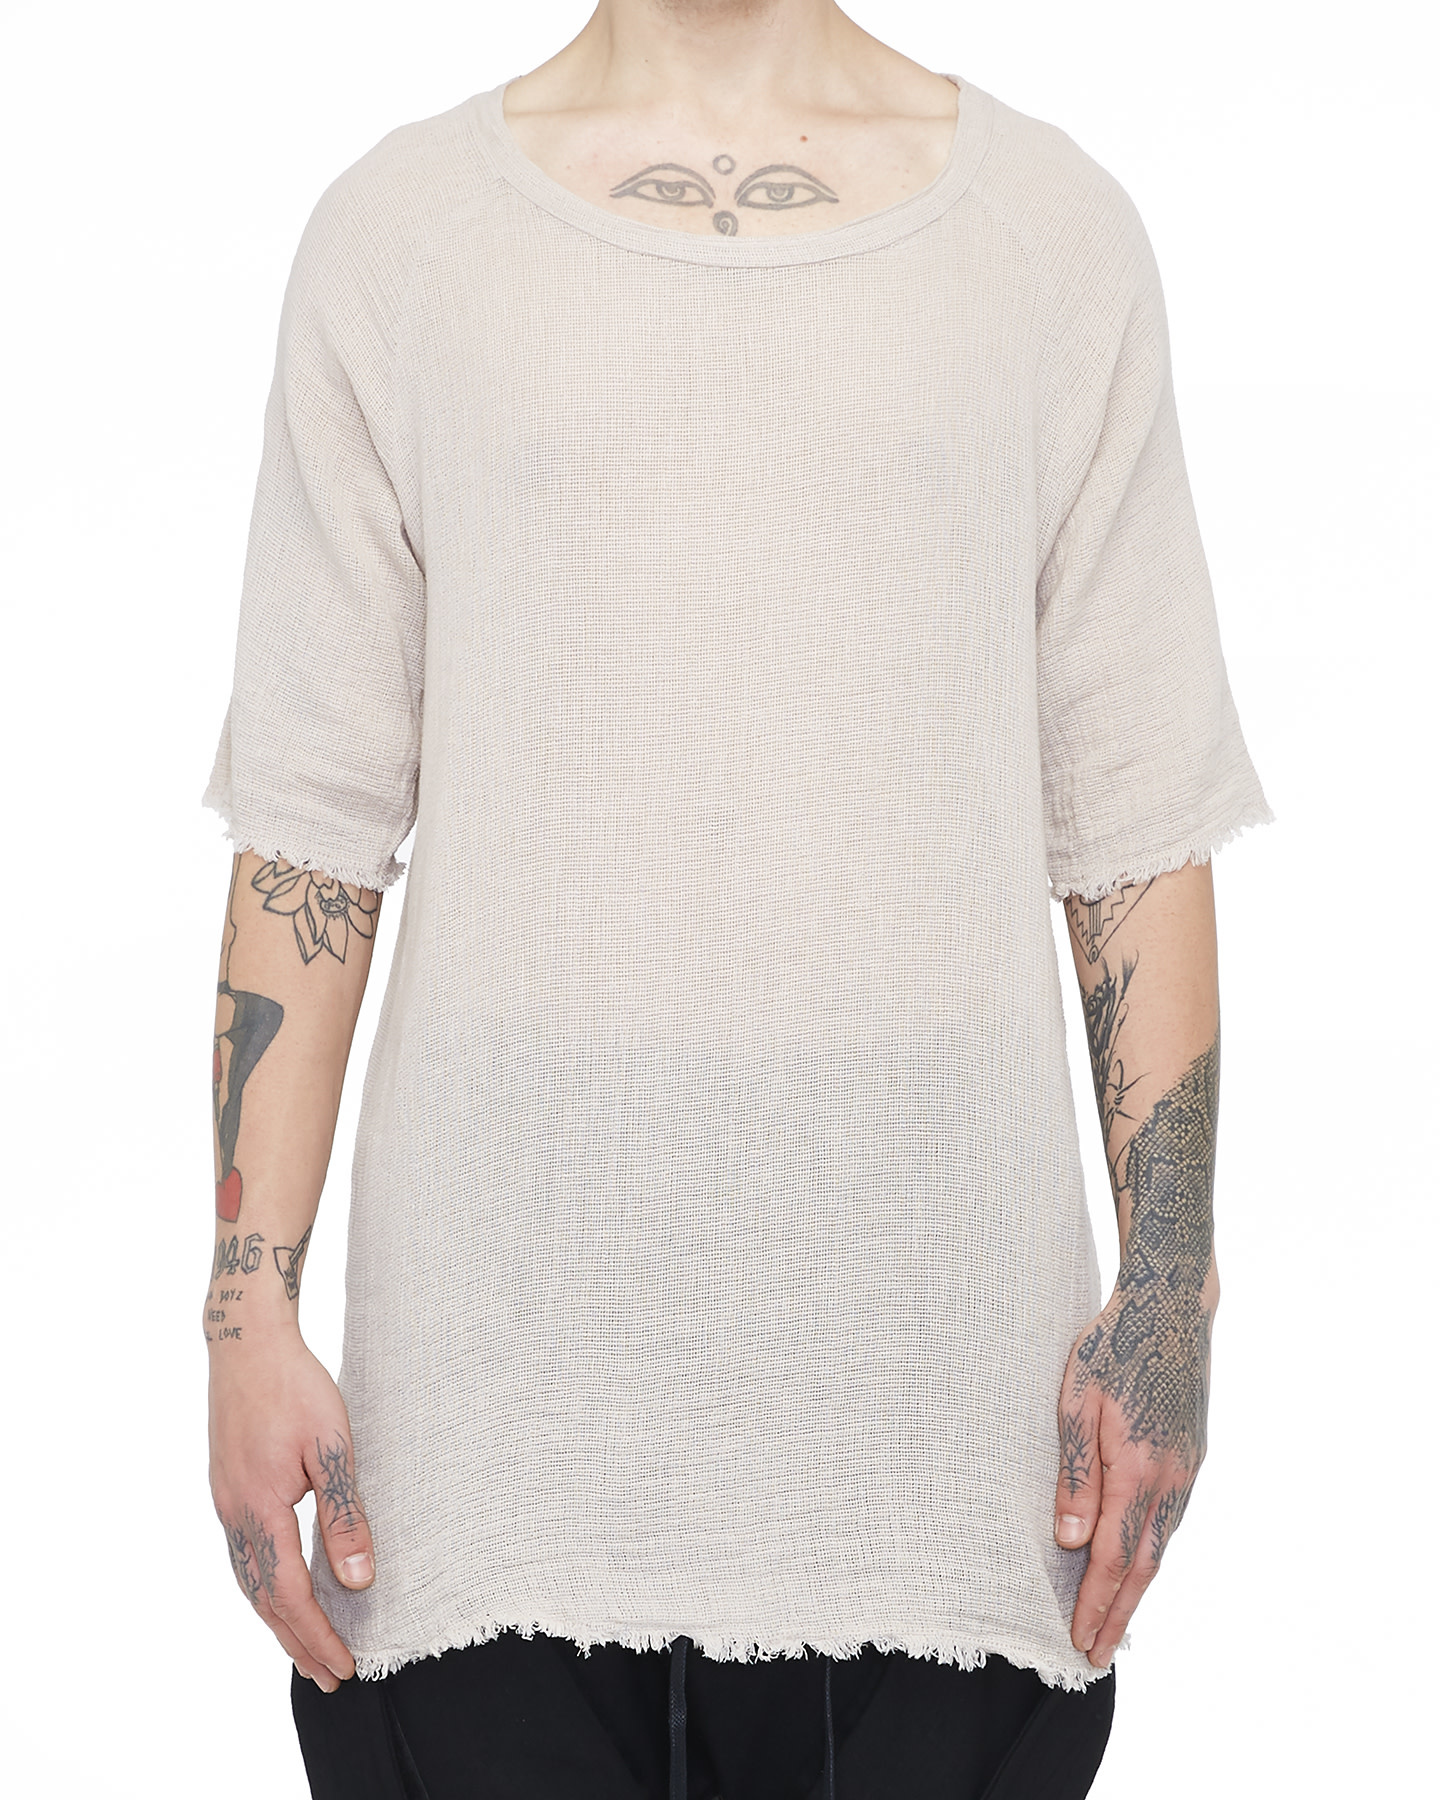 KNITTED T-SHIRT 33 - SAND